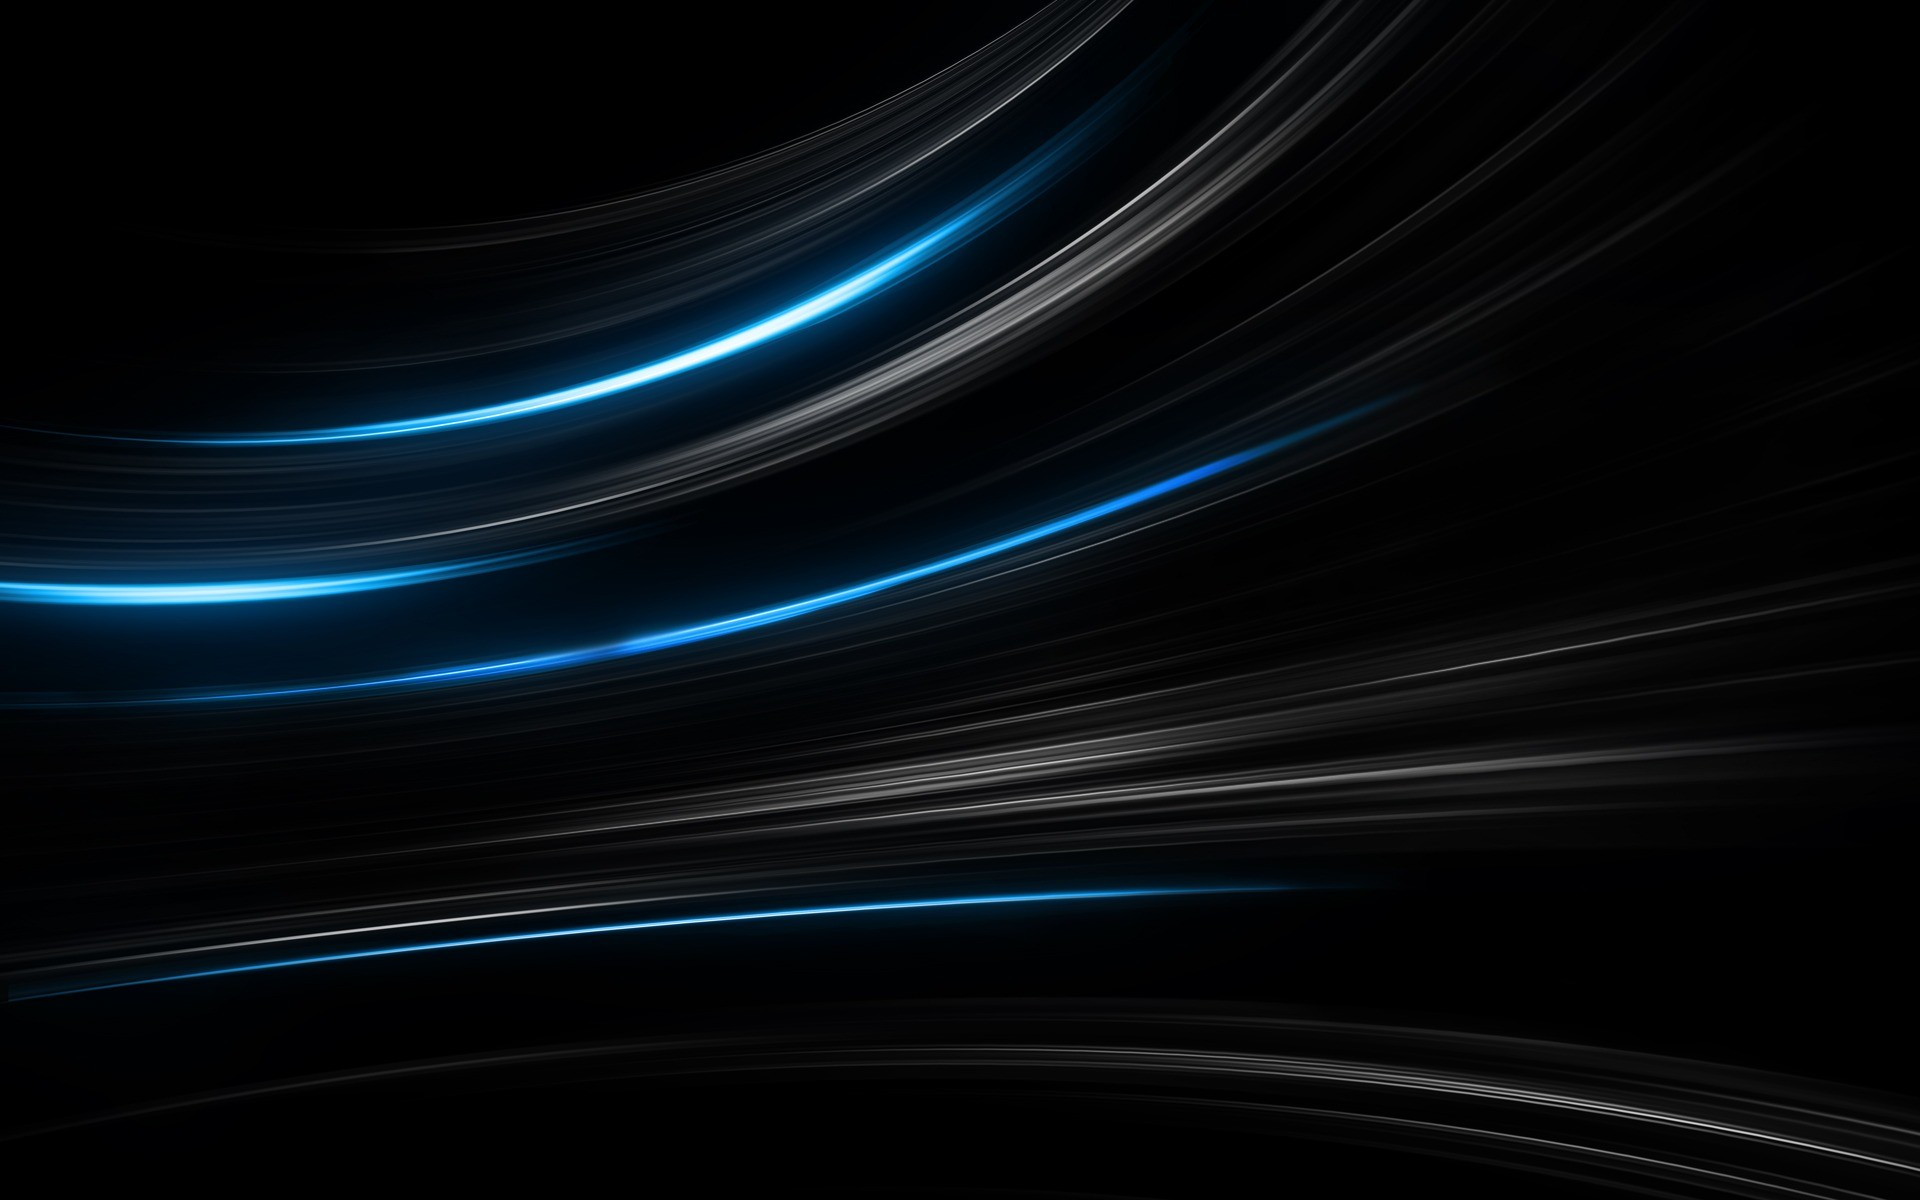 black and blue abstract wallpaper (62+ images)